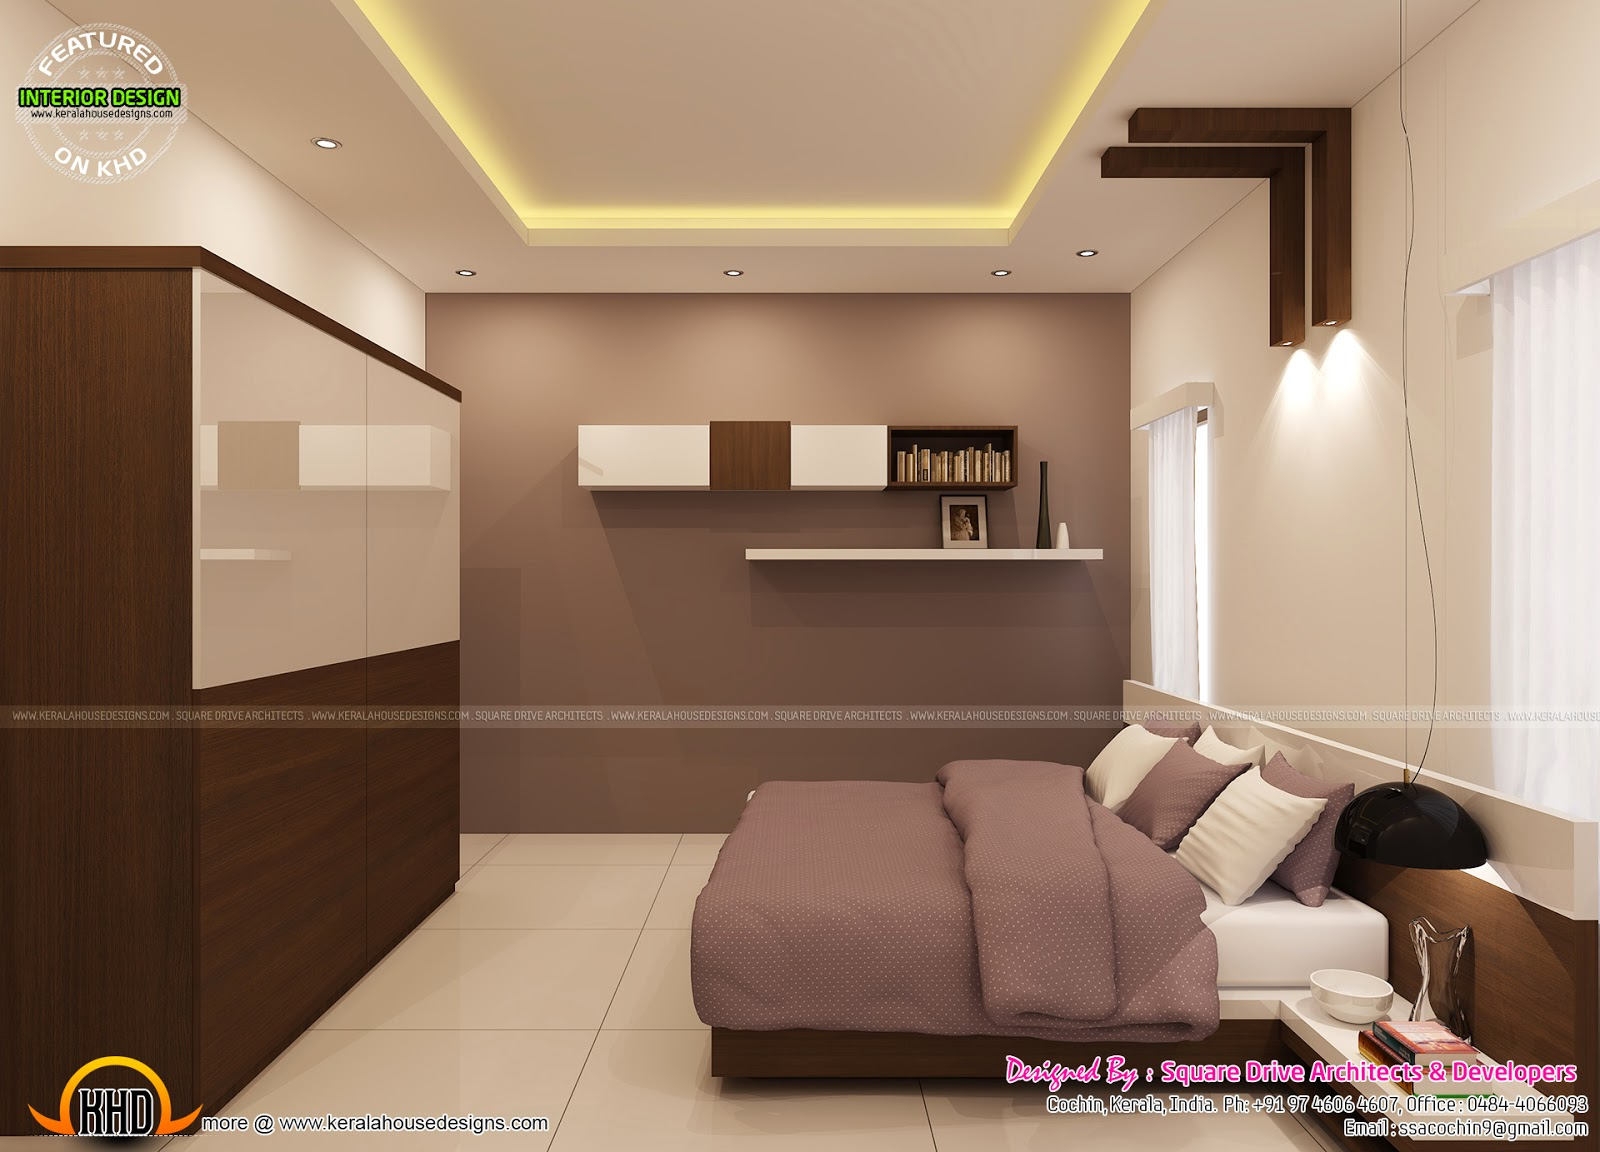 Bedroom interior decoration kerala home design and floor plans - Interior decoration for bedroom ...